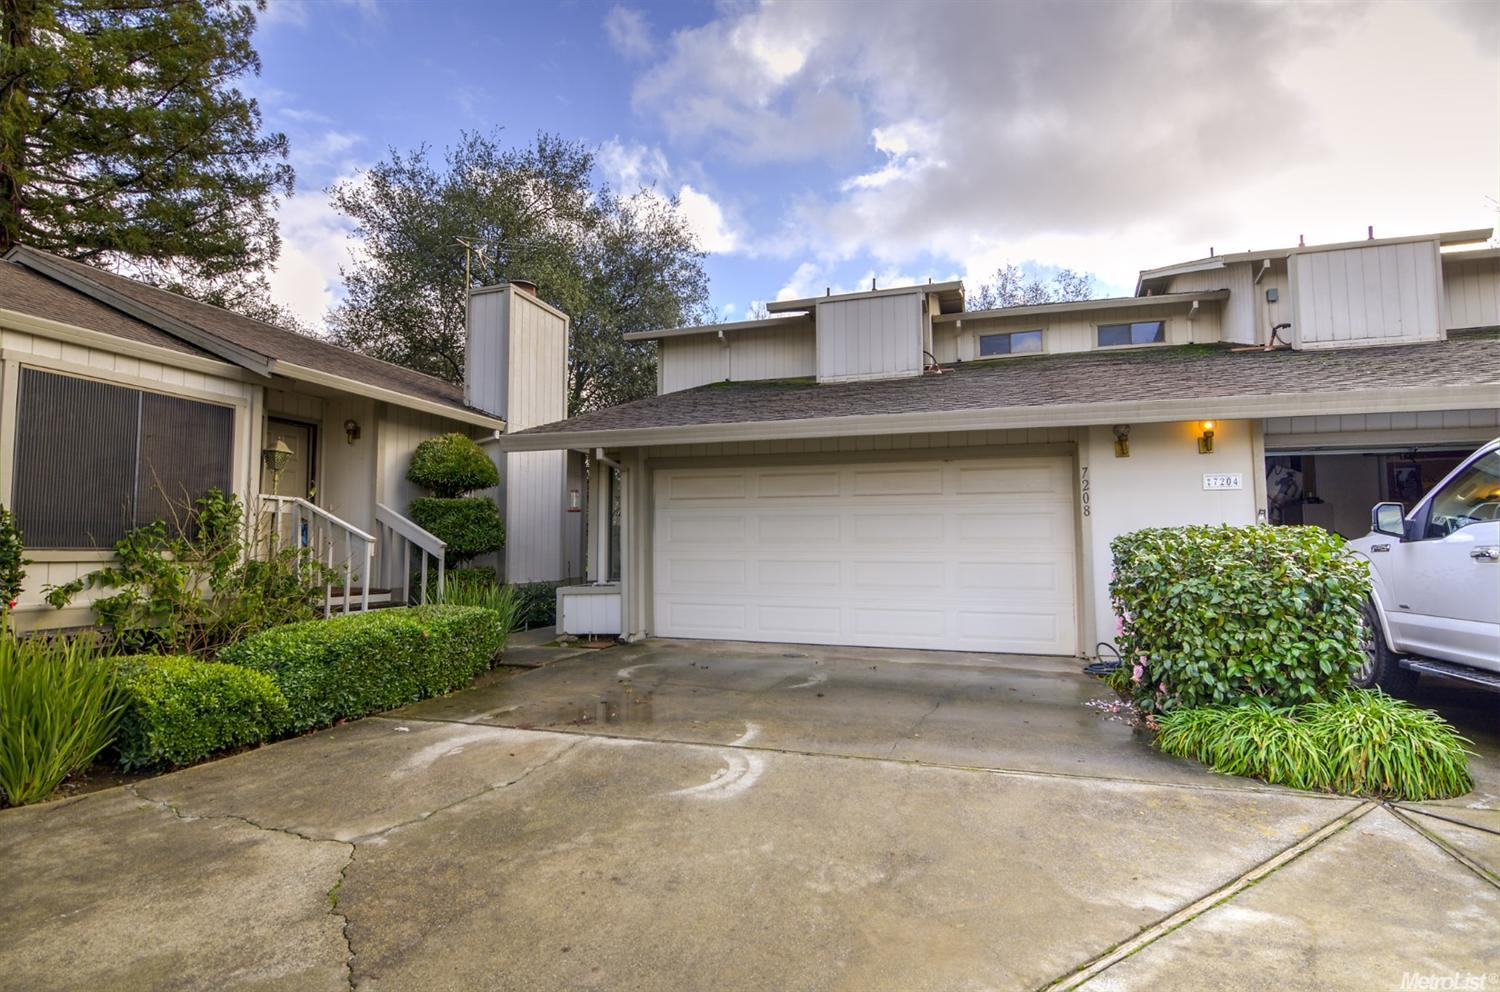 7208 Amsterdam Ave, Citrus Heights, CA